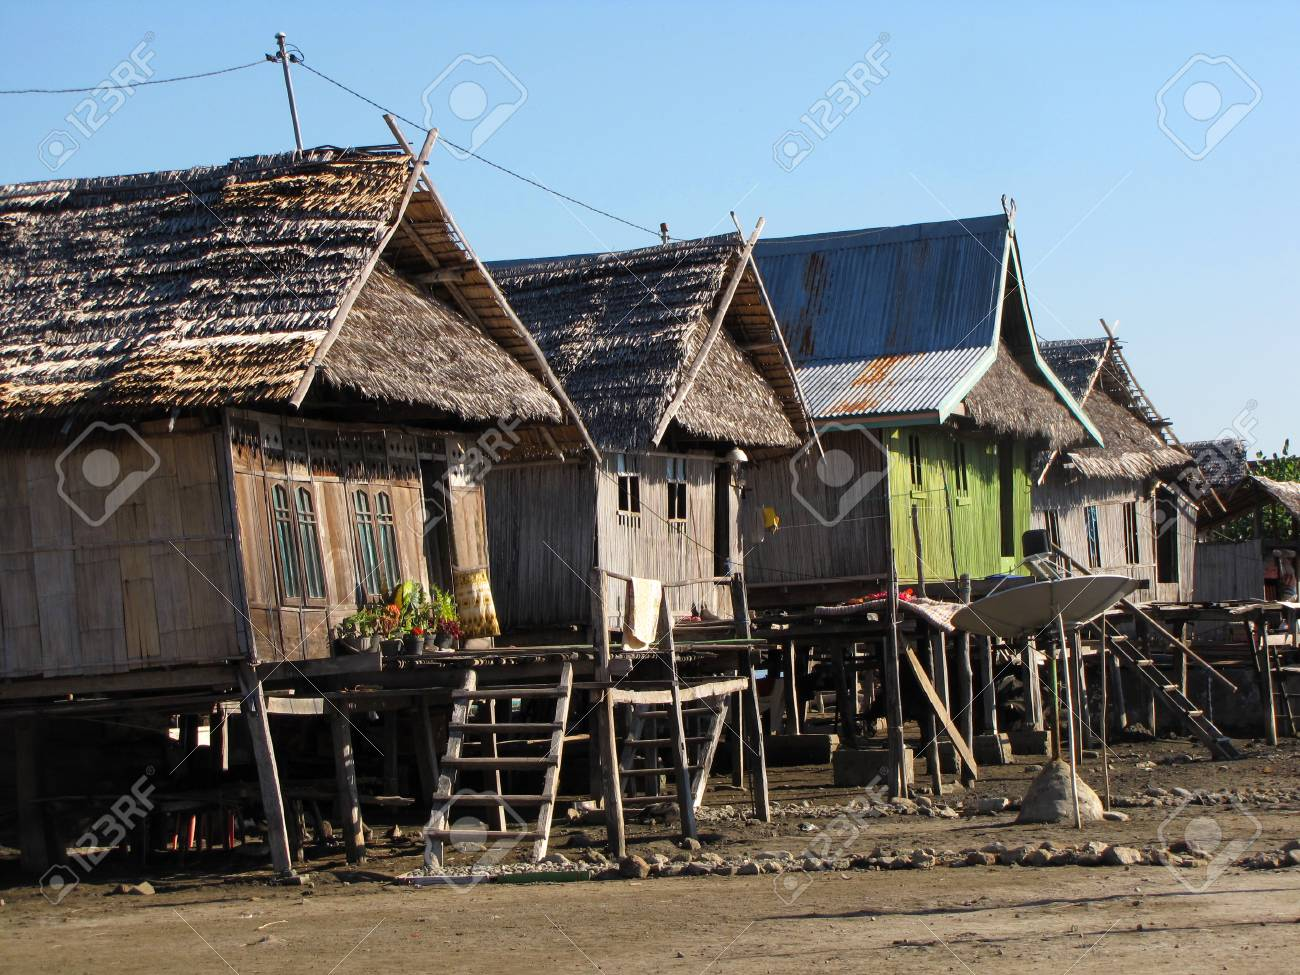 Wooden Houses On The Poles In A Little Fishing Village On The